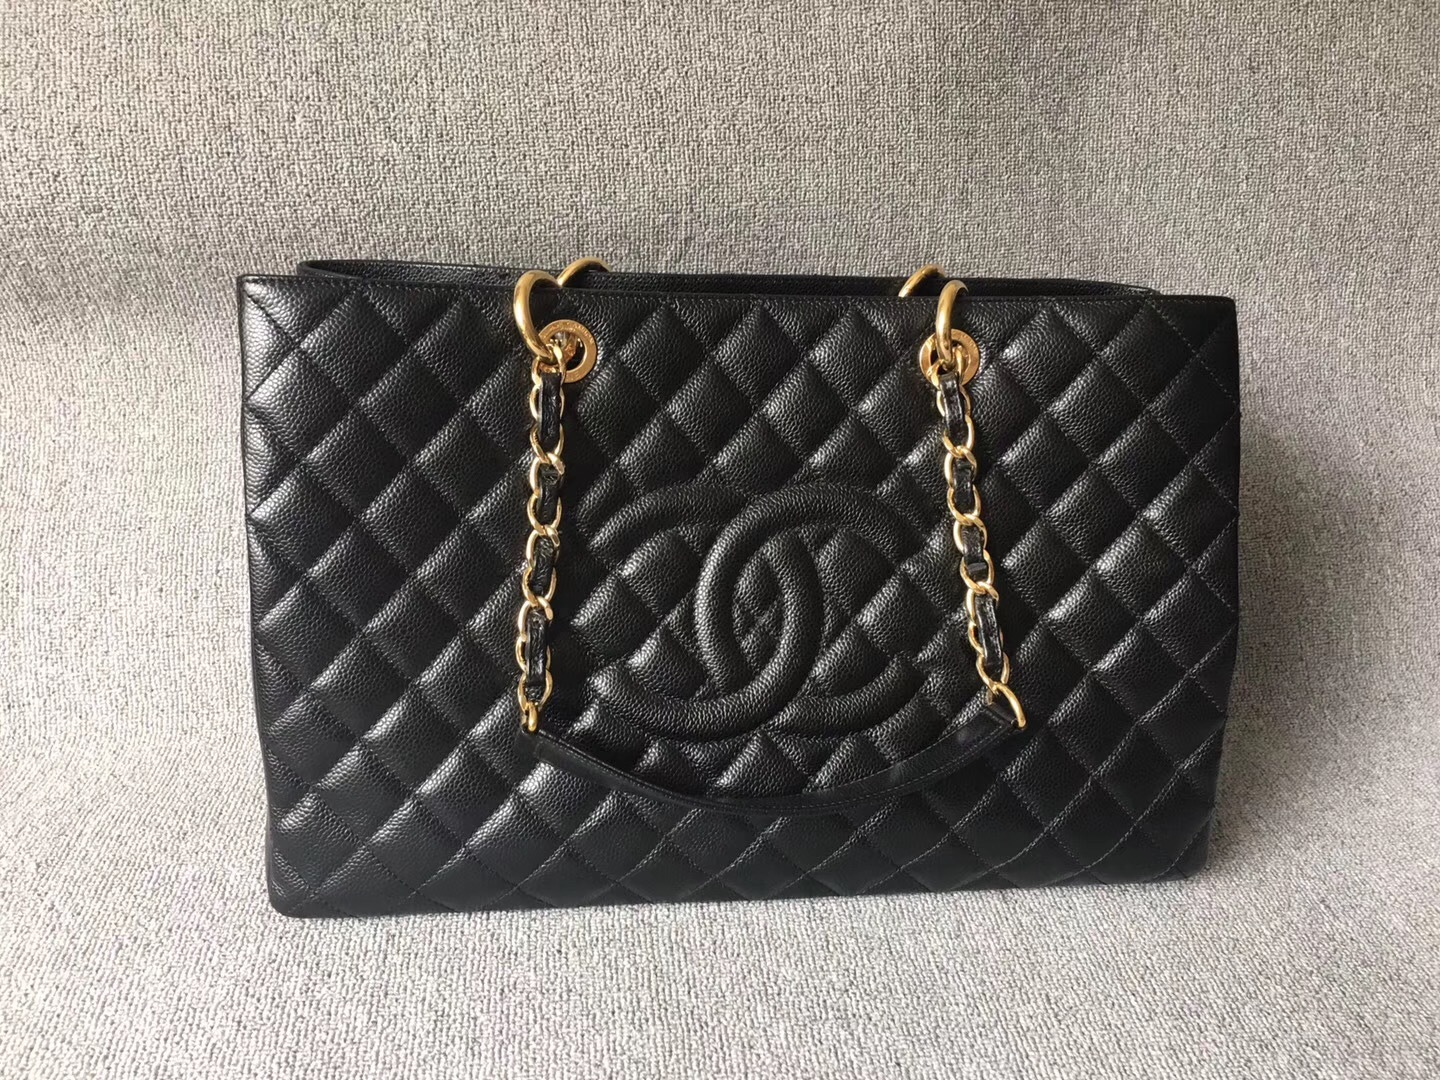 100% AUTH CHANEL BLACK QUILTED CAVIAR XL GST GRAND SHOPPING TOTE BAG